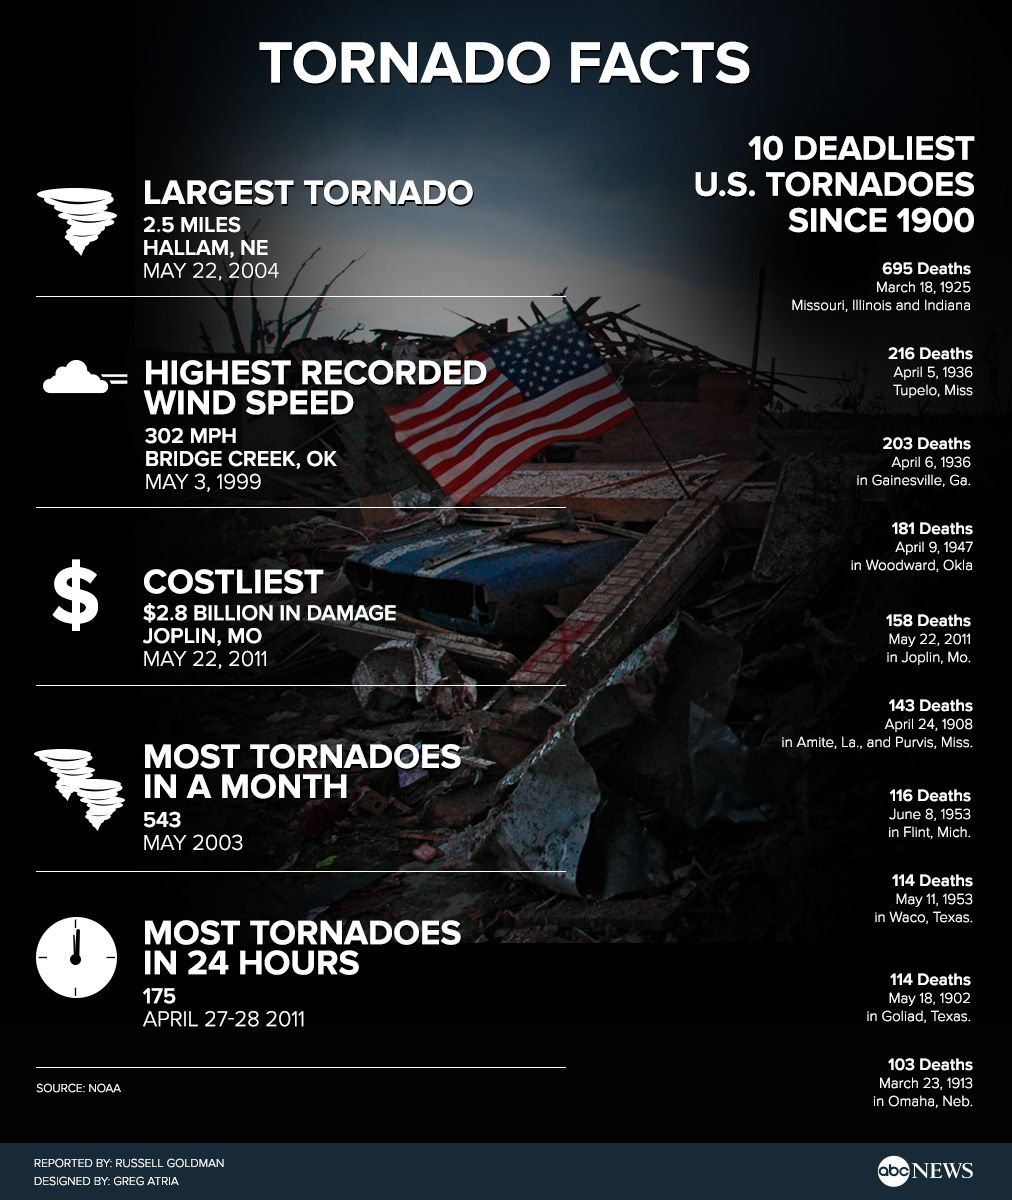 Tornado Facts Infographic - ABCNews - ABC News | Infographics ...